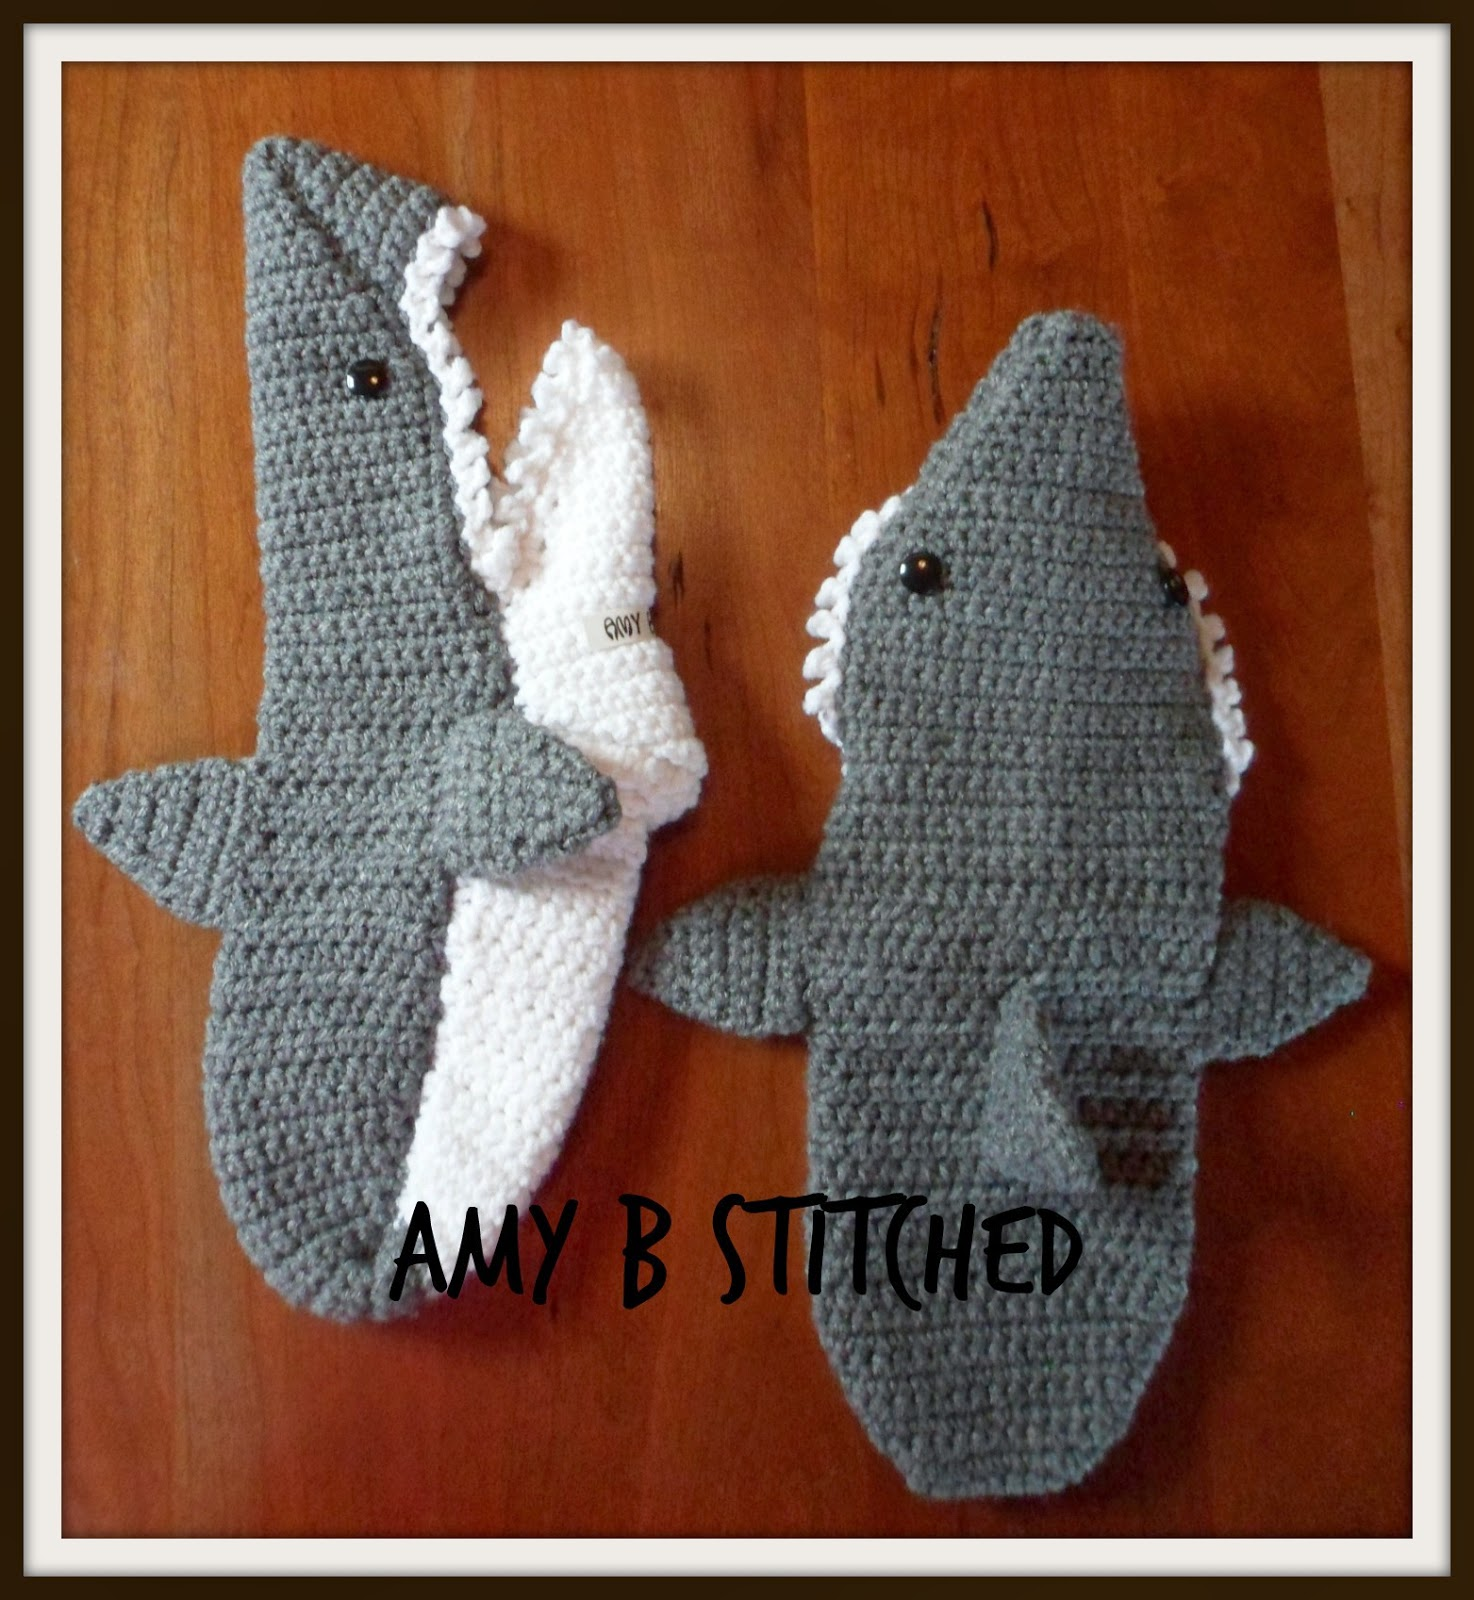 A Stitch At A Time for Amy B Stitched: Crocheted Shark ...